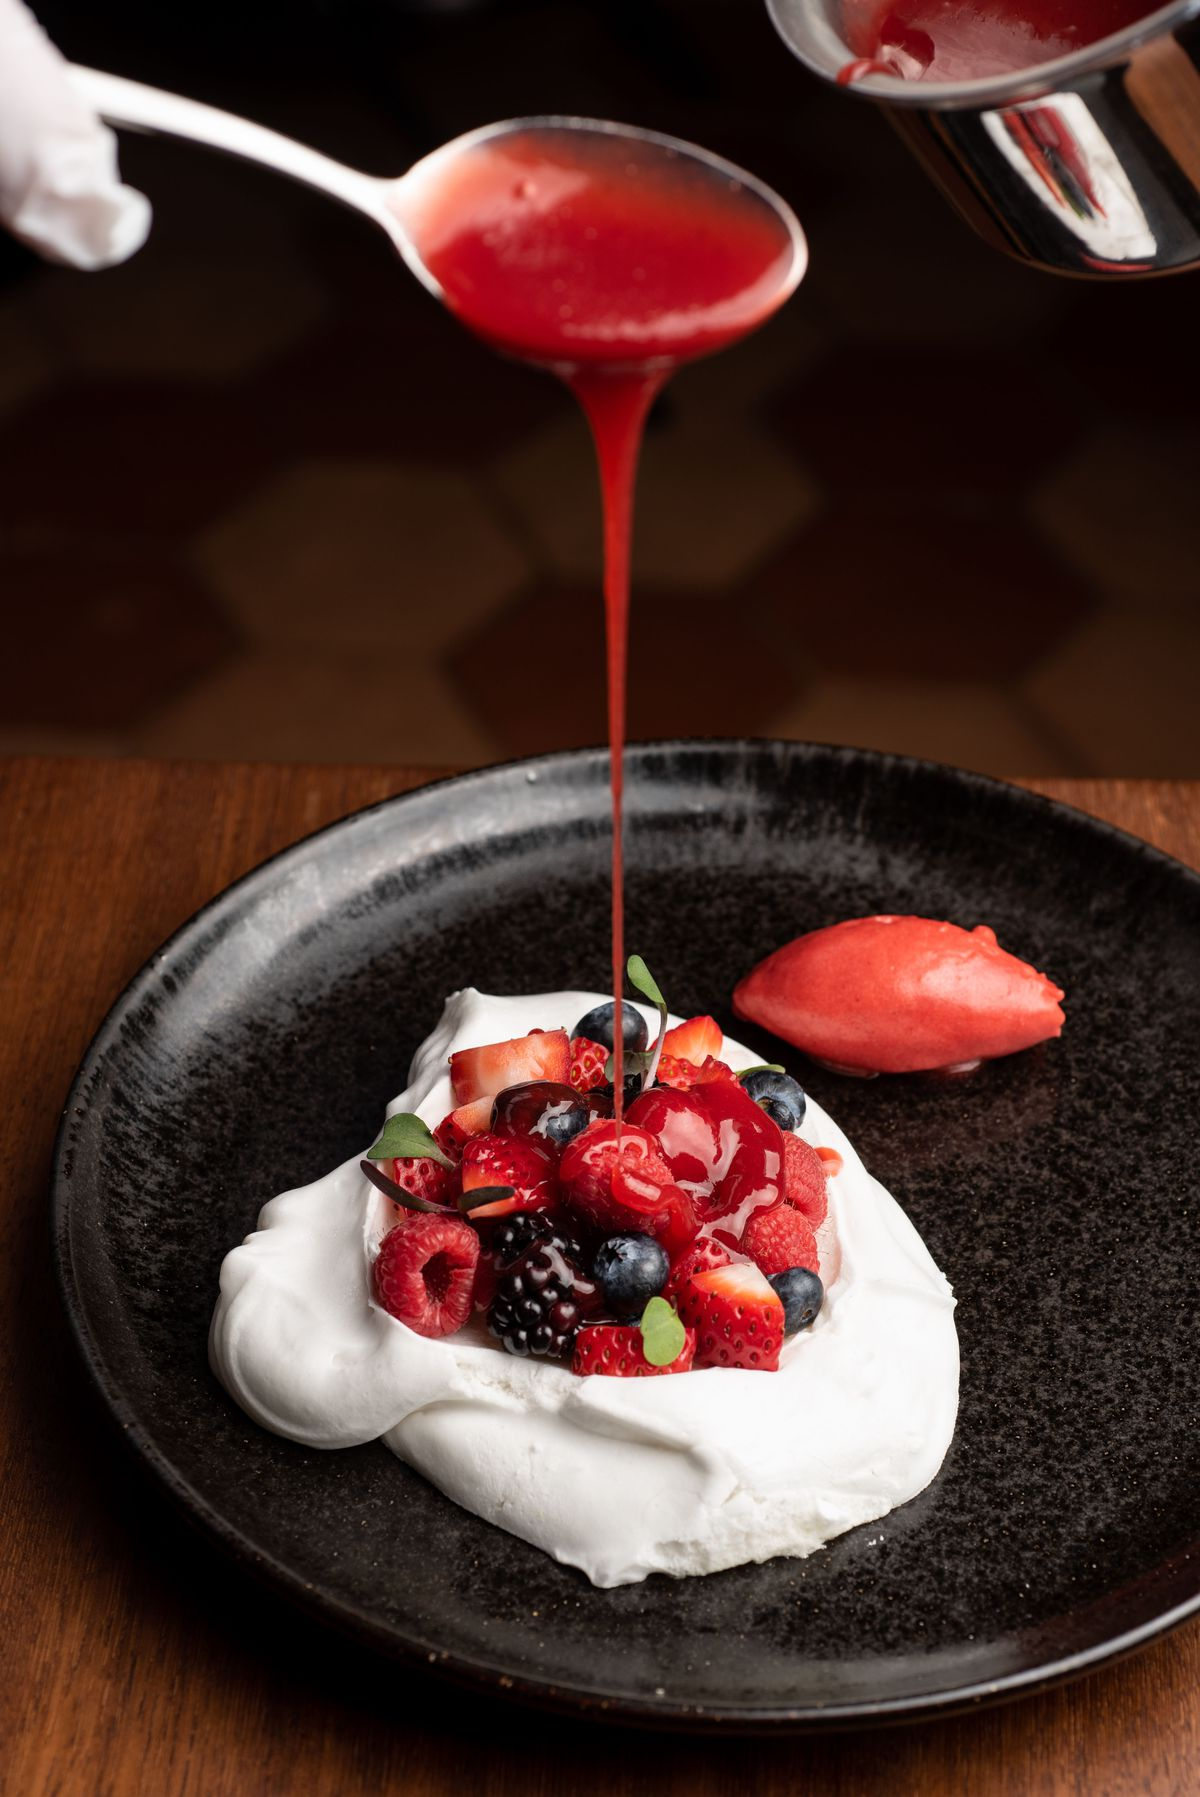 Vegan pavlova with mixed berries and raspberry sorbet on a dark plate.